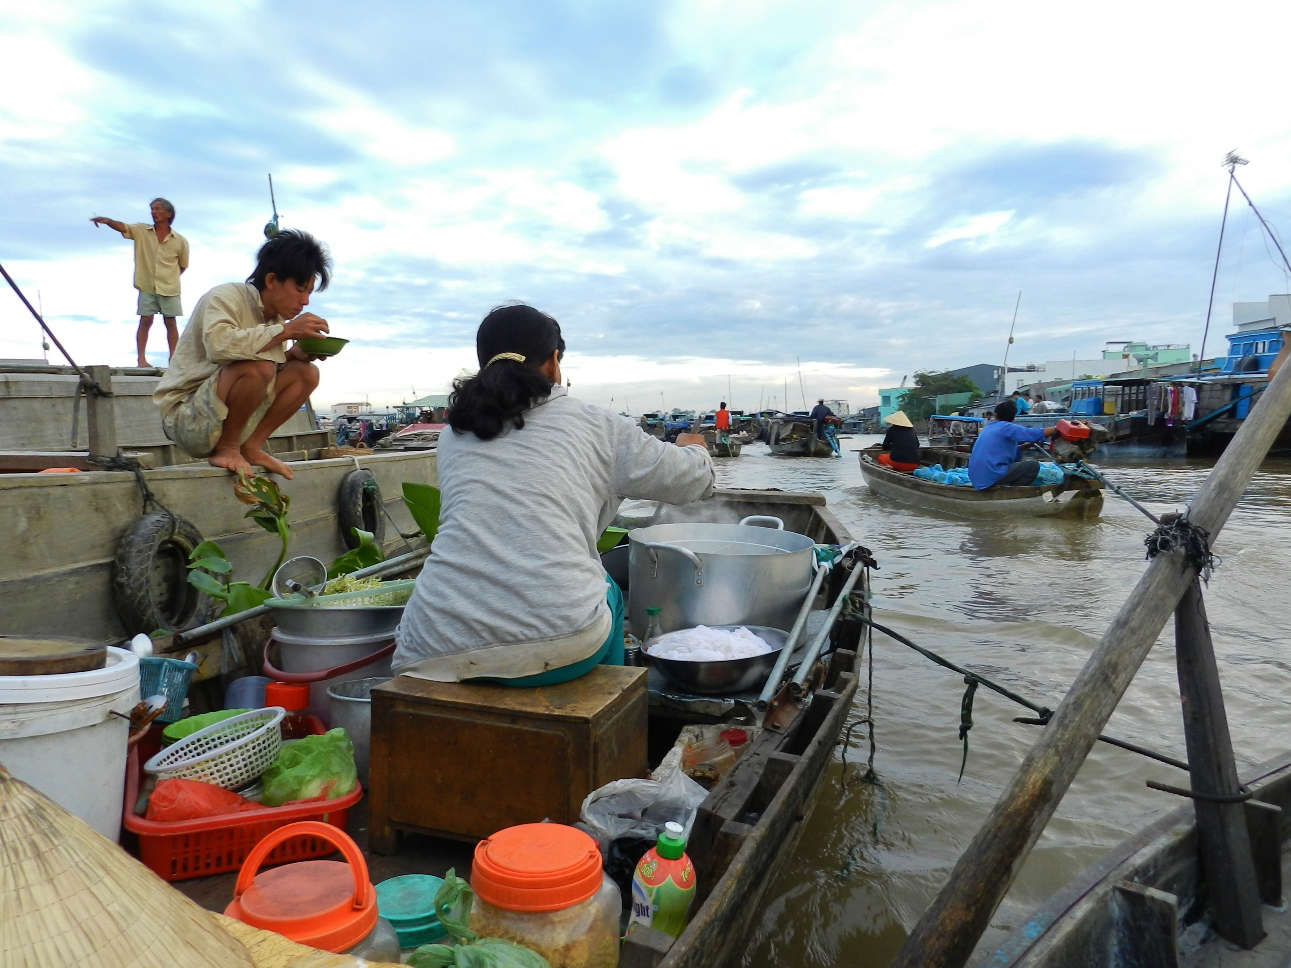 A soup boat at Cai Rang Market offers delicious breakfast